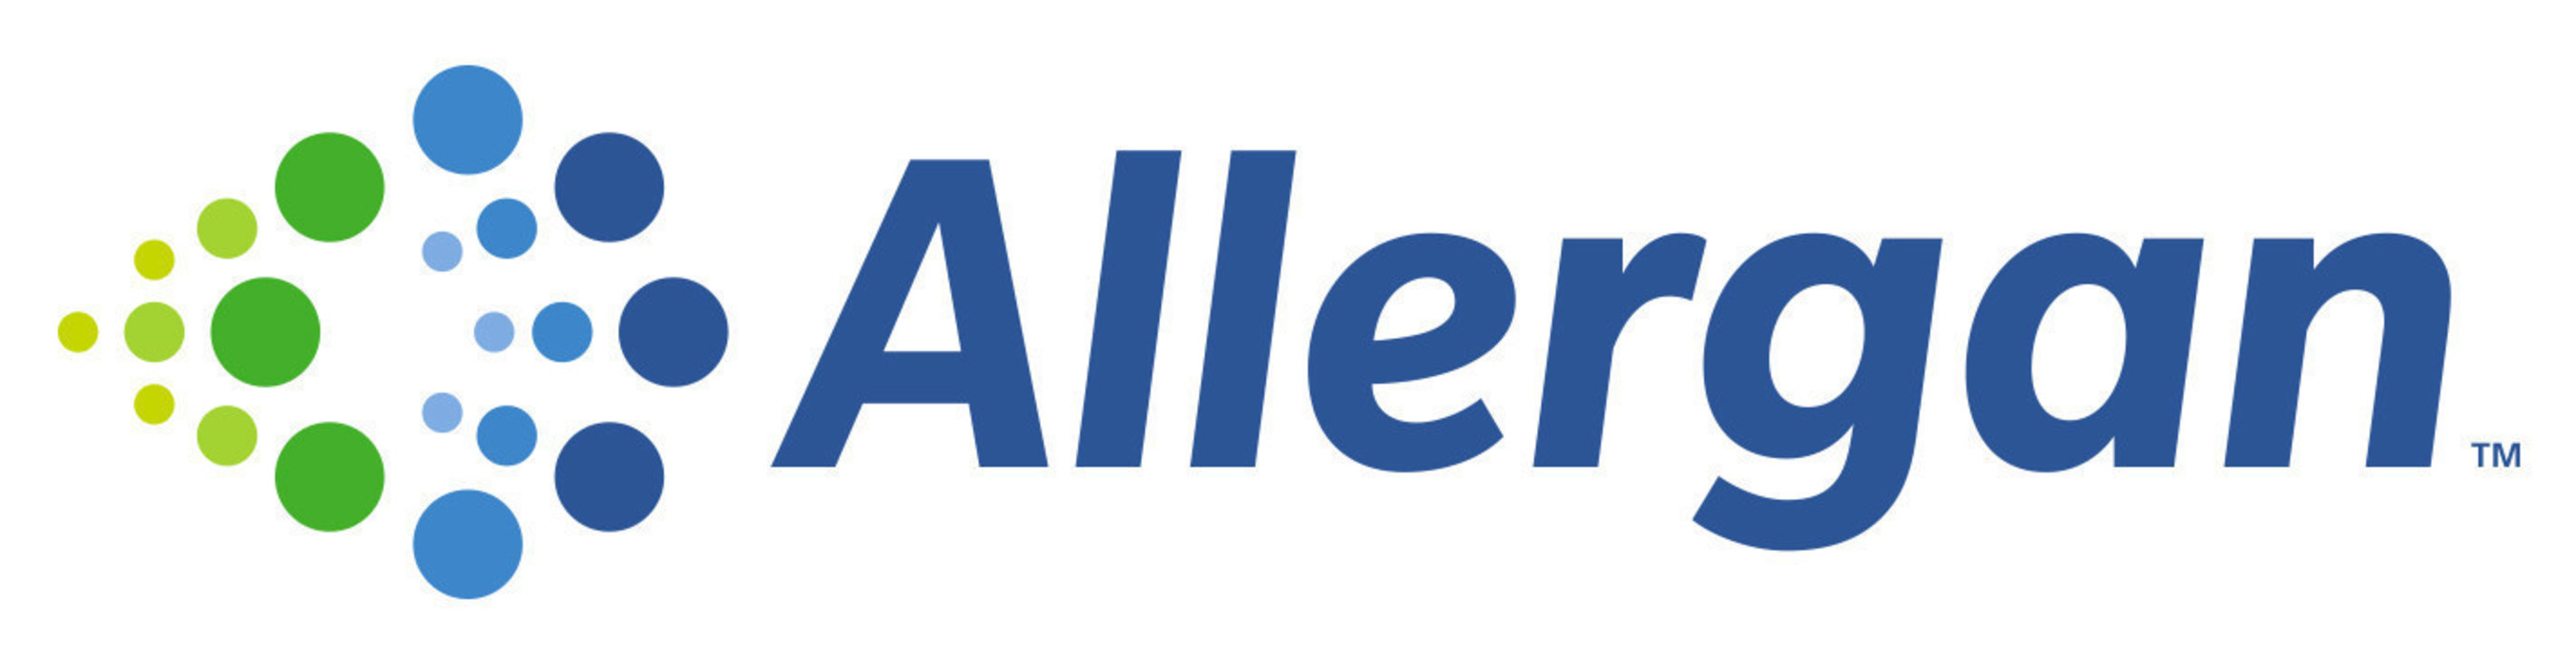 Allergan Presents EARLY Analysis Data at the American Academy of Ophthalmology (AAO) Annual Meeting